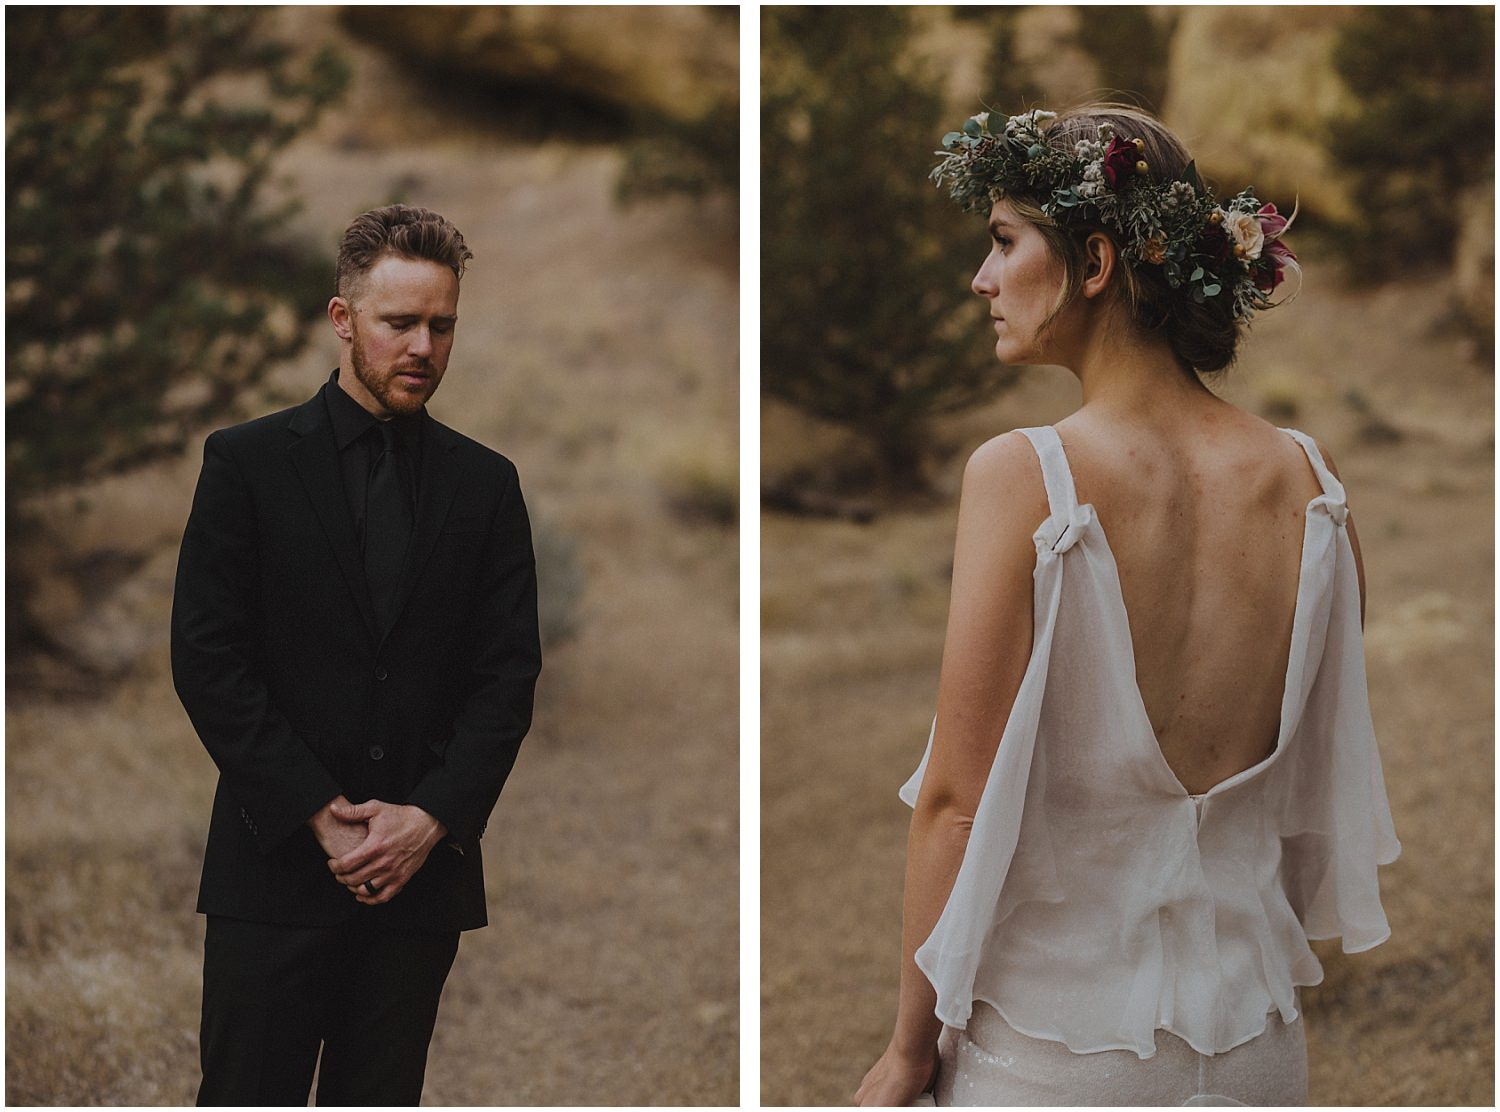 wedding couple standing side by side oregon elopement and wedding photographer kyle szeto